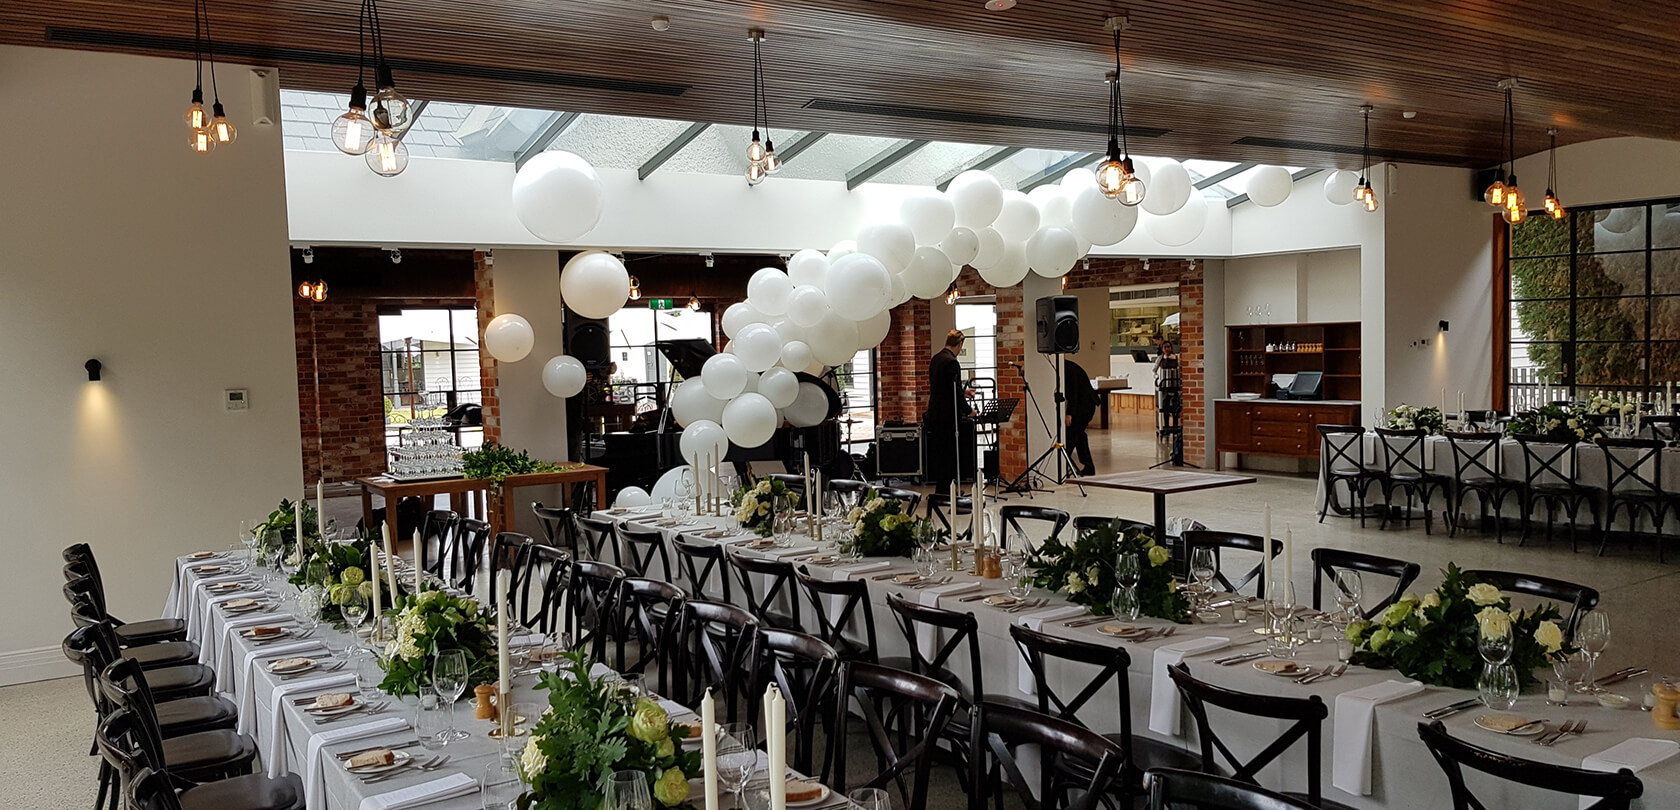 White Balloon Arrangement - see our events - beautiful balloon backdrop - shivoo balloons and decor specialists in coburg north